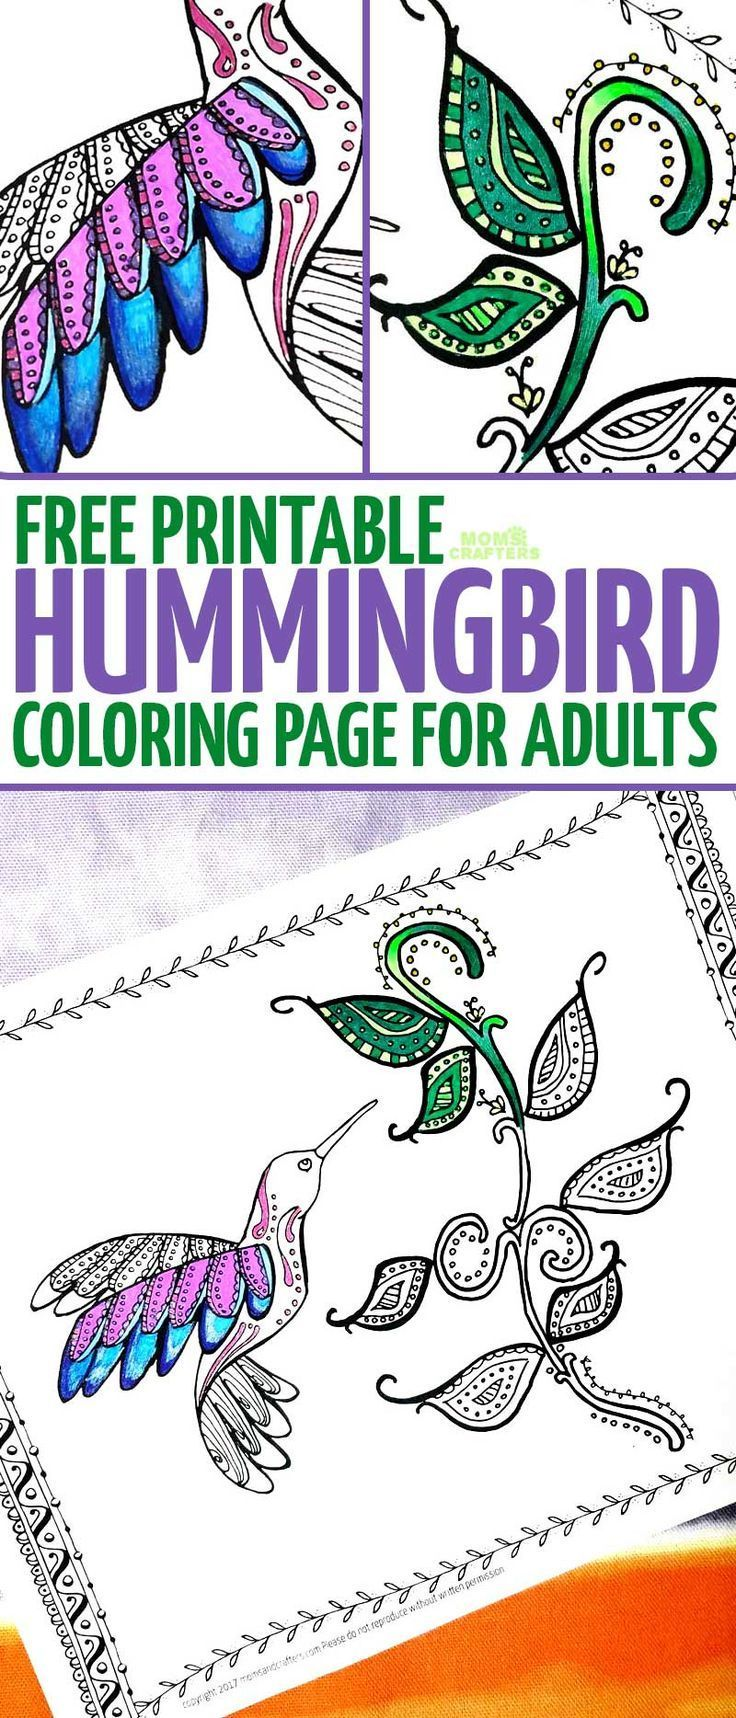 Spring coloring pages free printable - A Free Printable Hummingbird Coloring Page